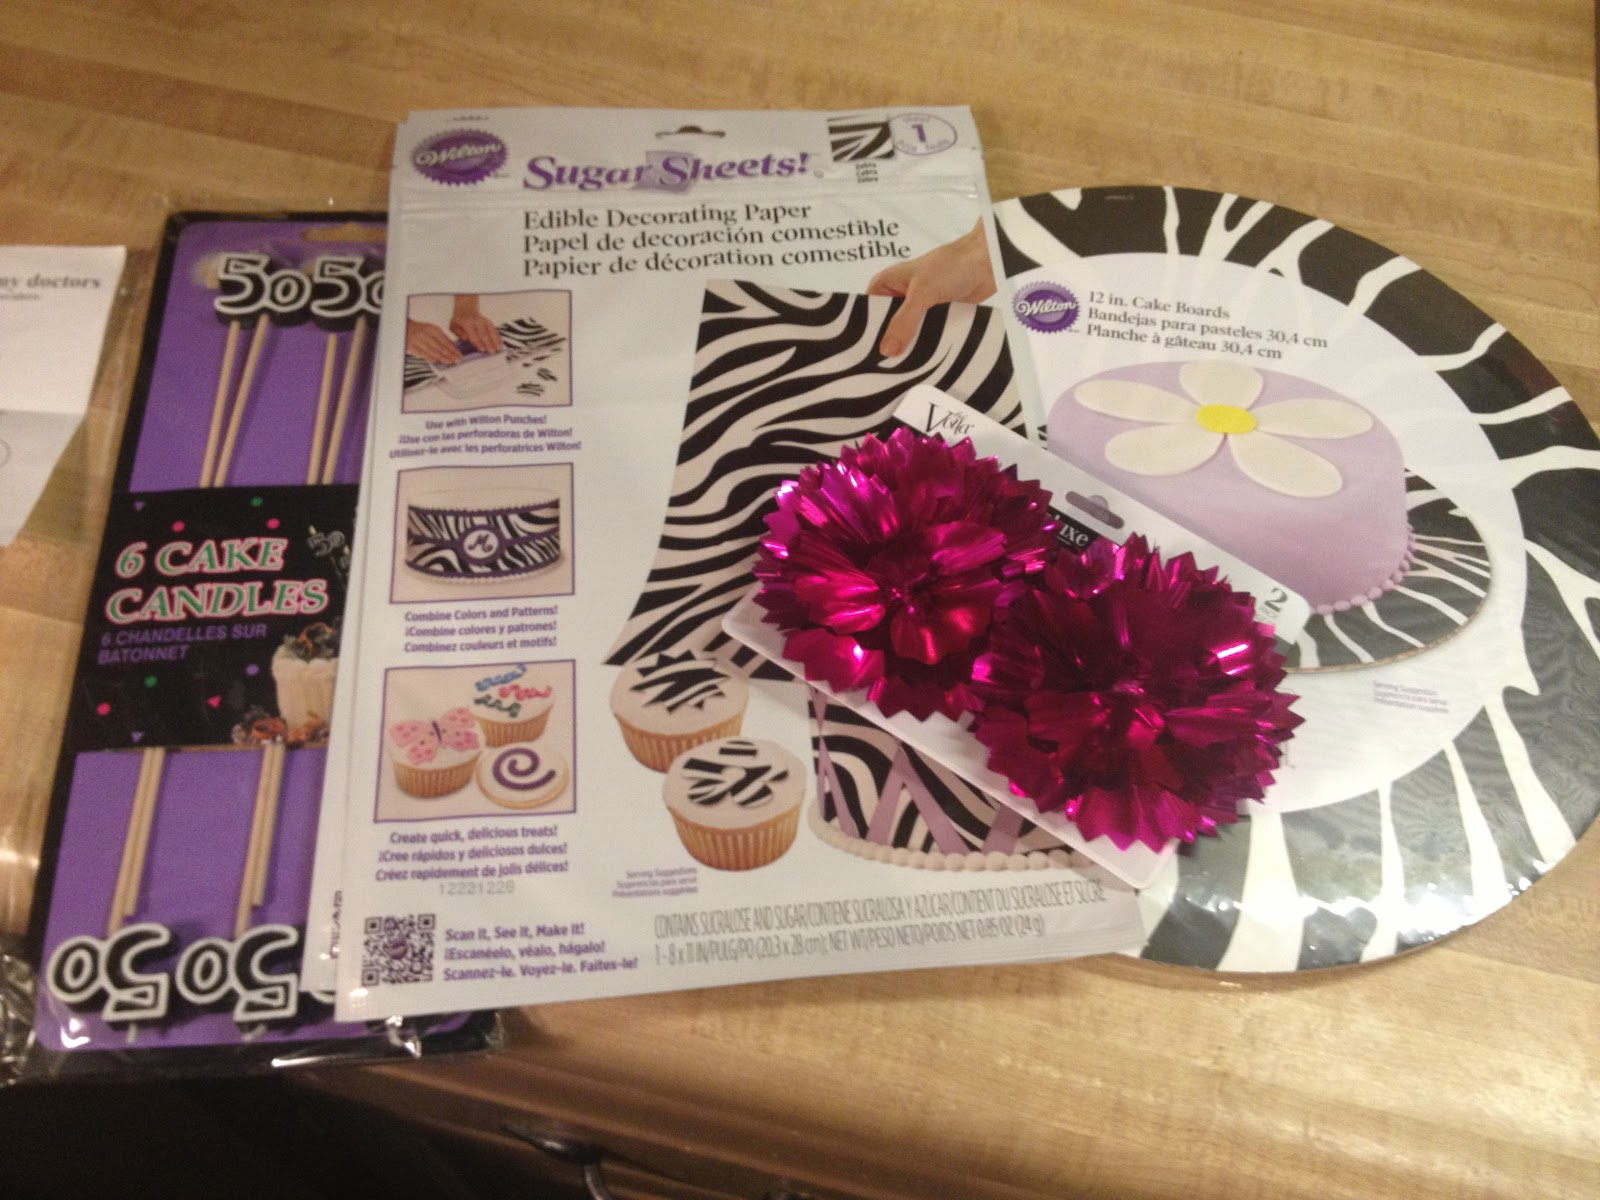 I Got The Sugar Sheets At Michaels Cake Boards And Candles Party City Cute Foil Bows Toppers Dollar Tree